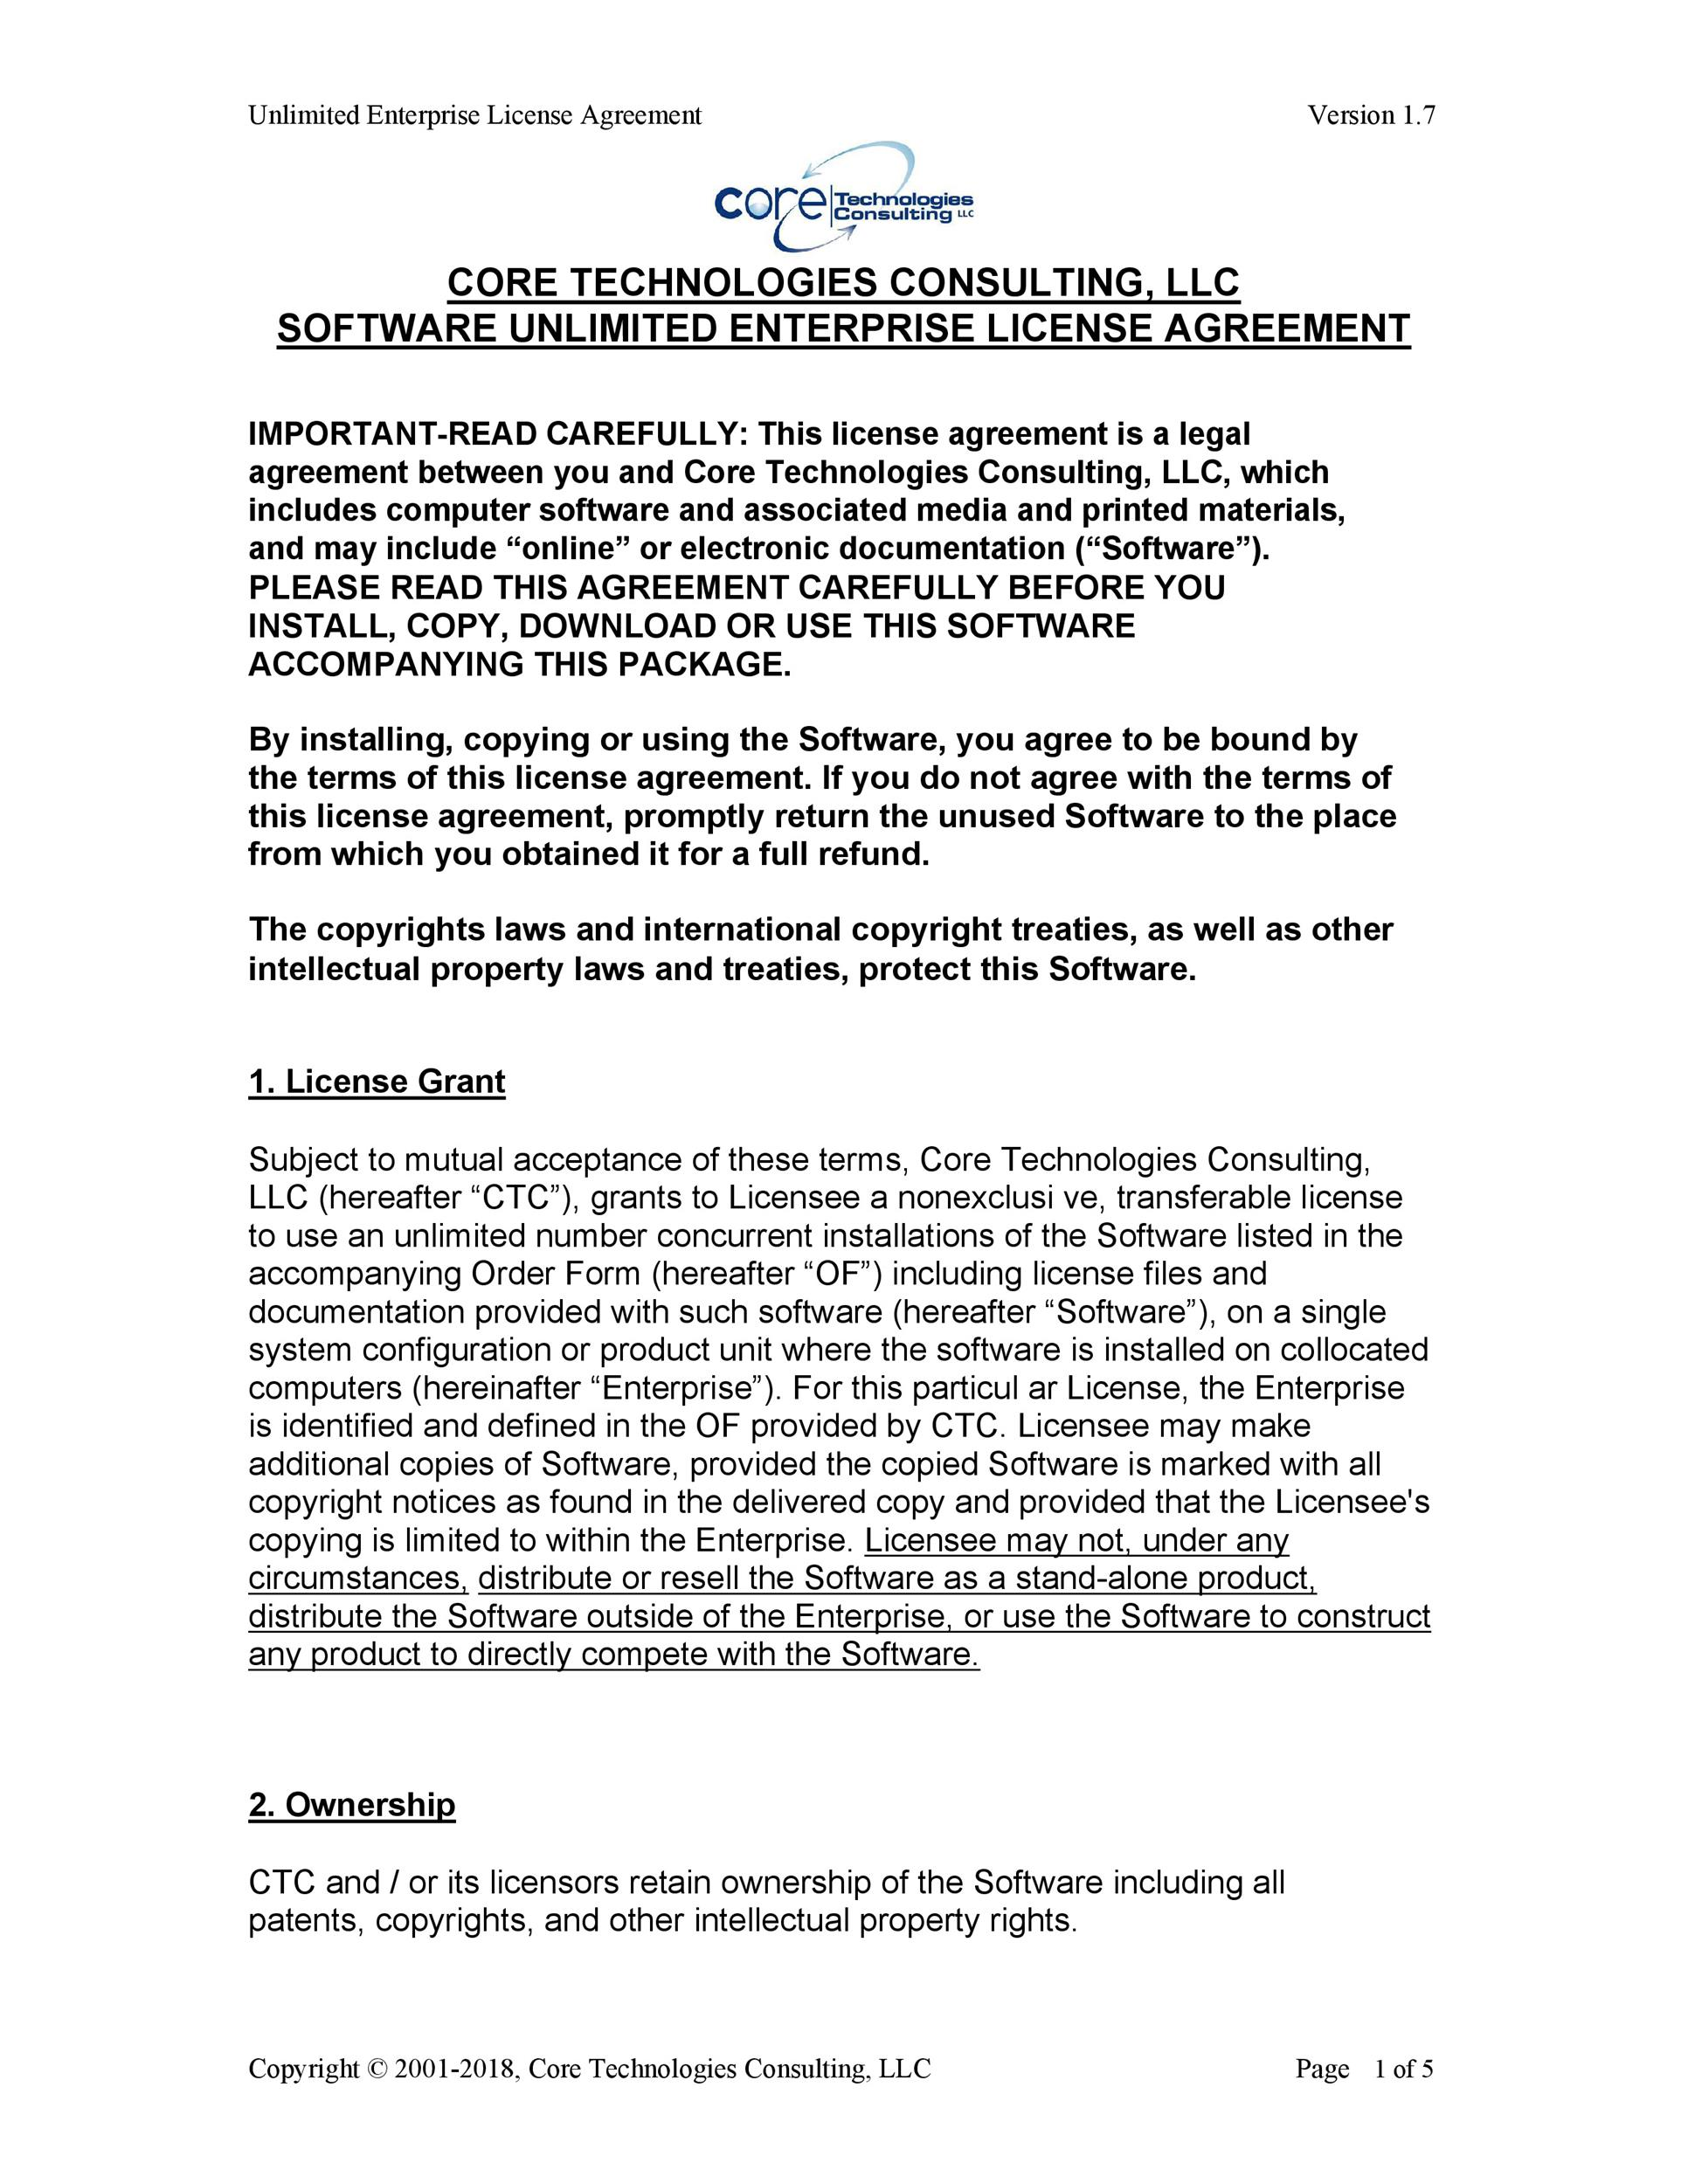 Free license agreement template 40